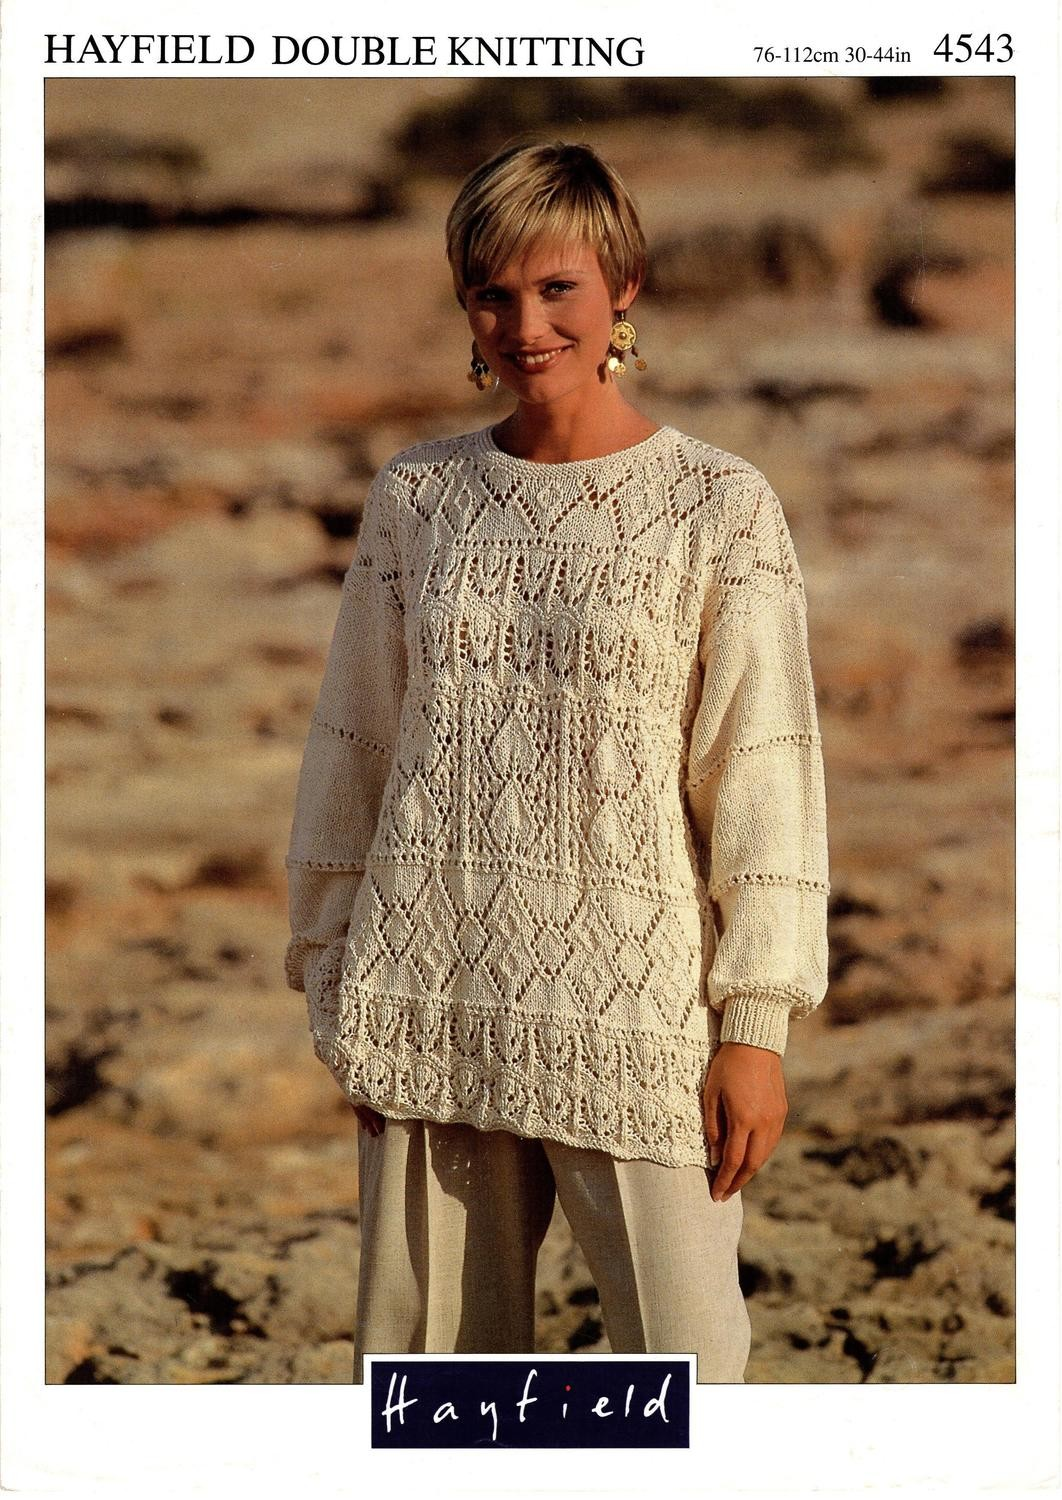 Hayfield Knitting Pattern Booklet No.4543